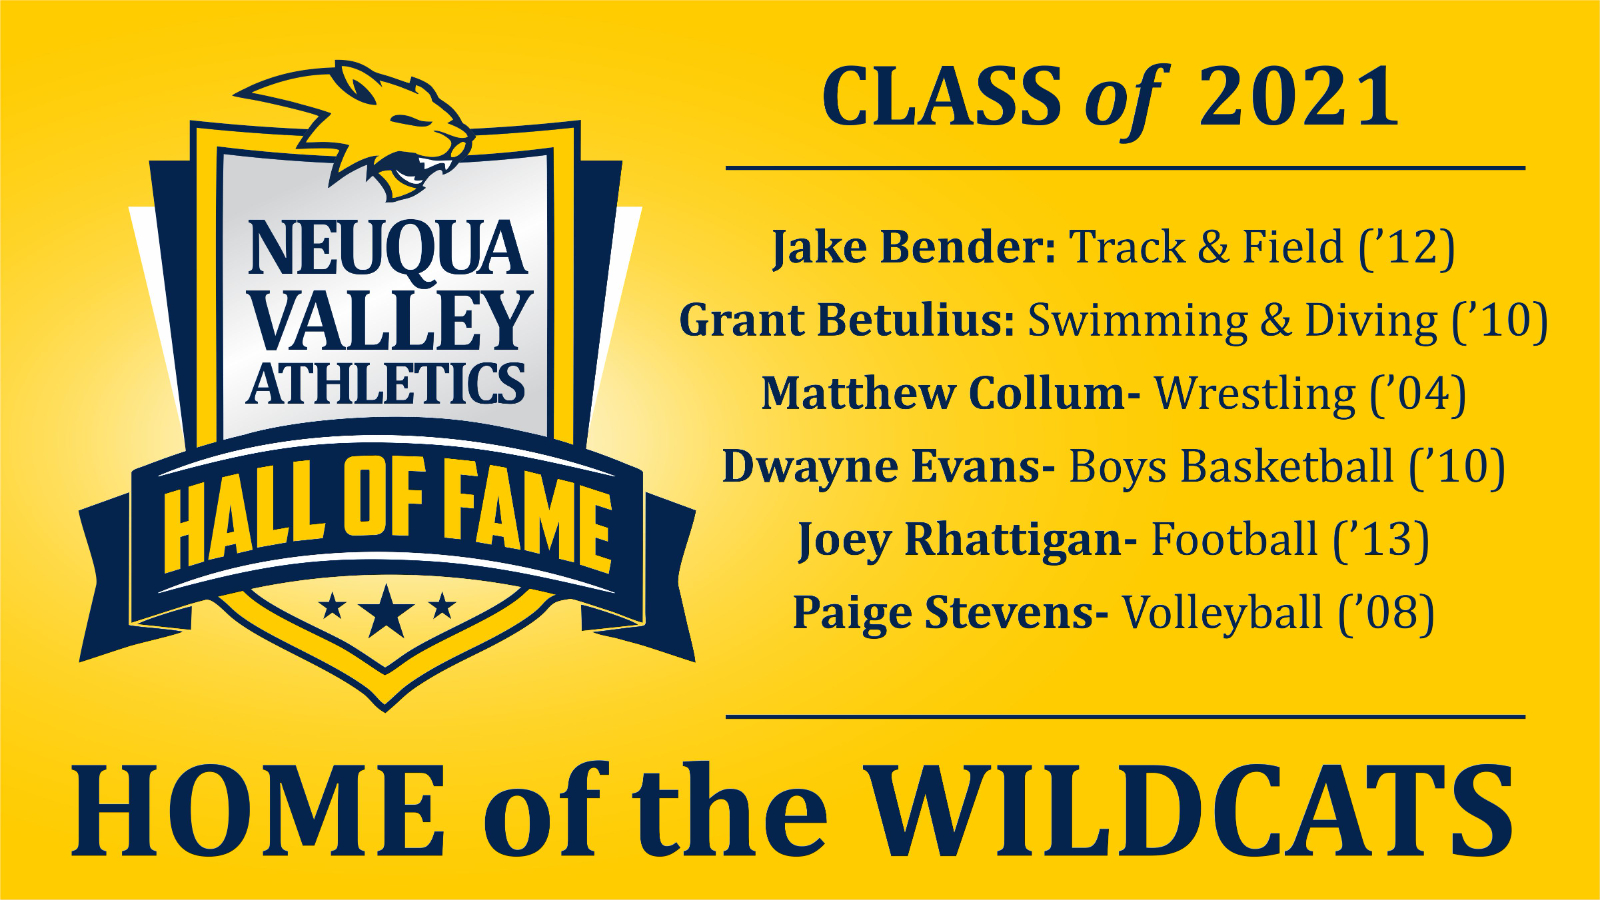 2021 Neuqua Valley Athletic Hall of Fame Class